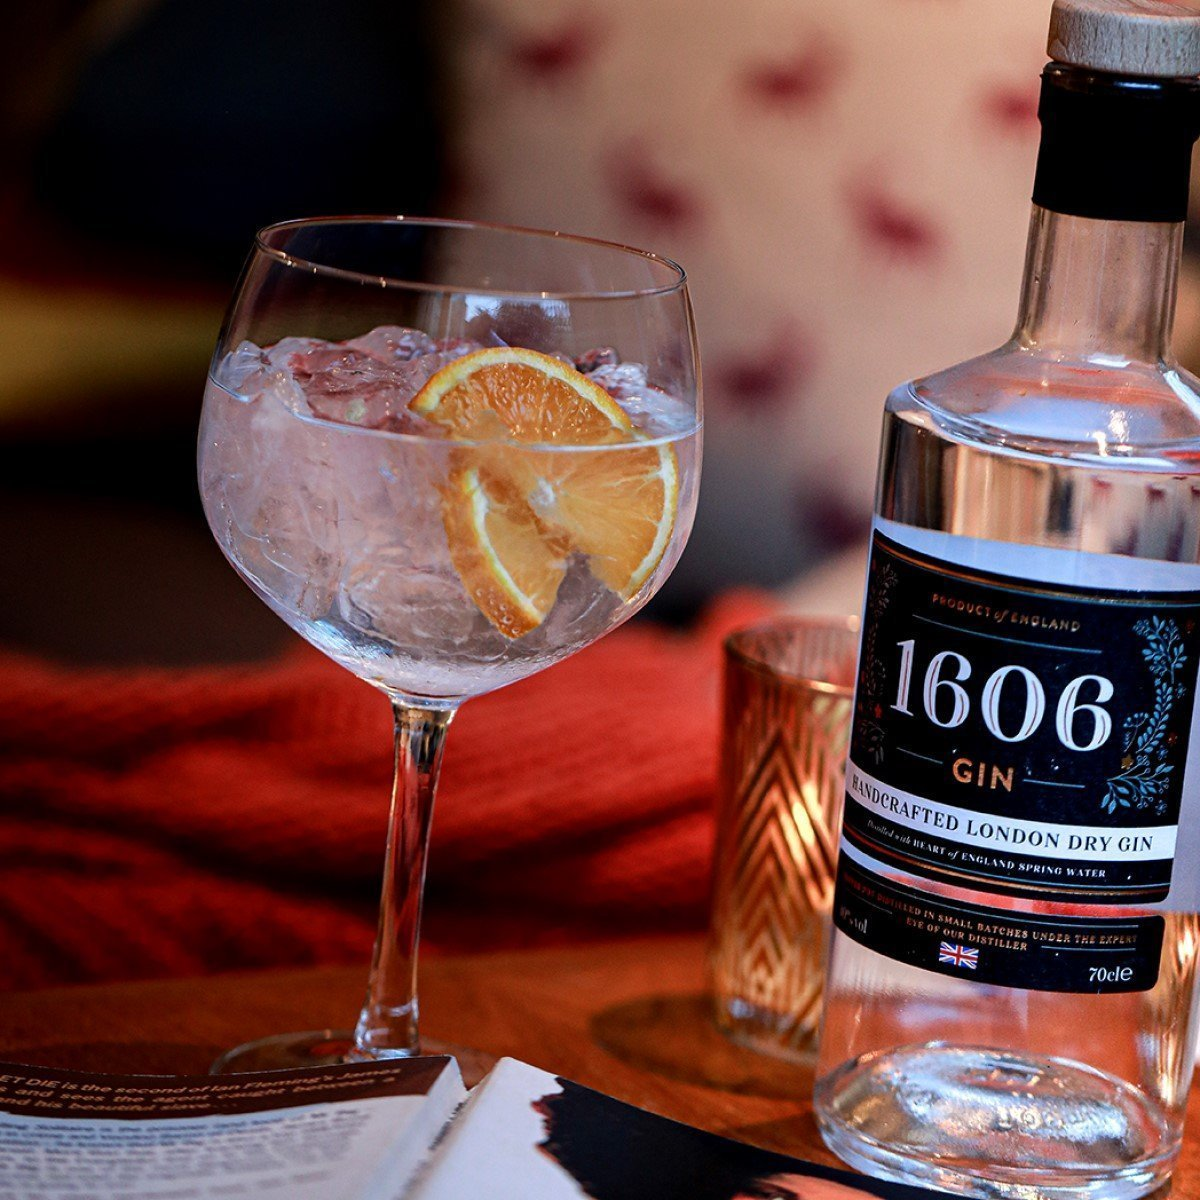 1606 Handcrafted London Dry Gin